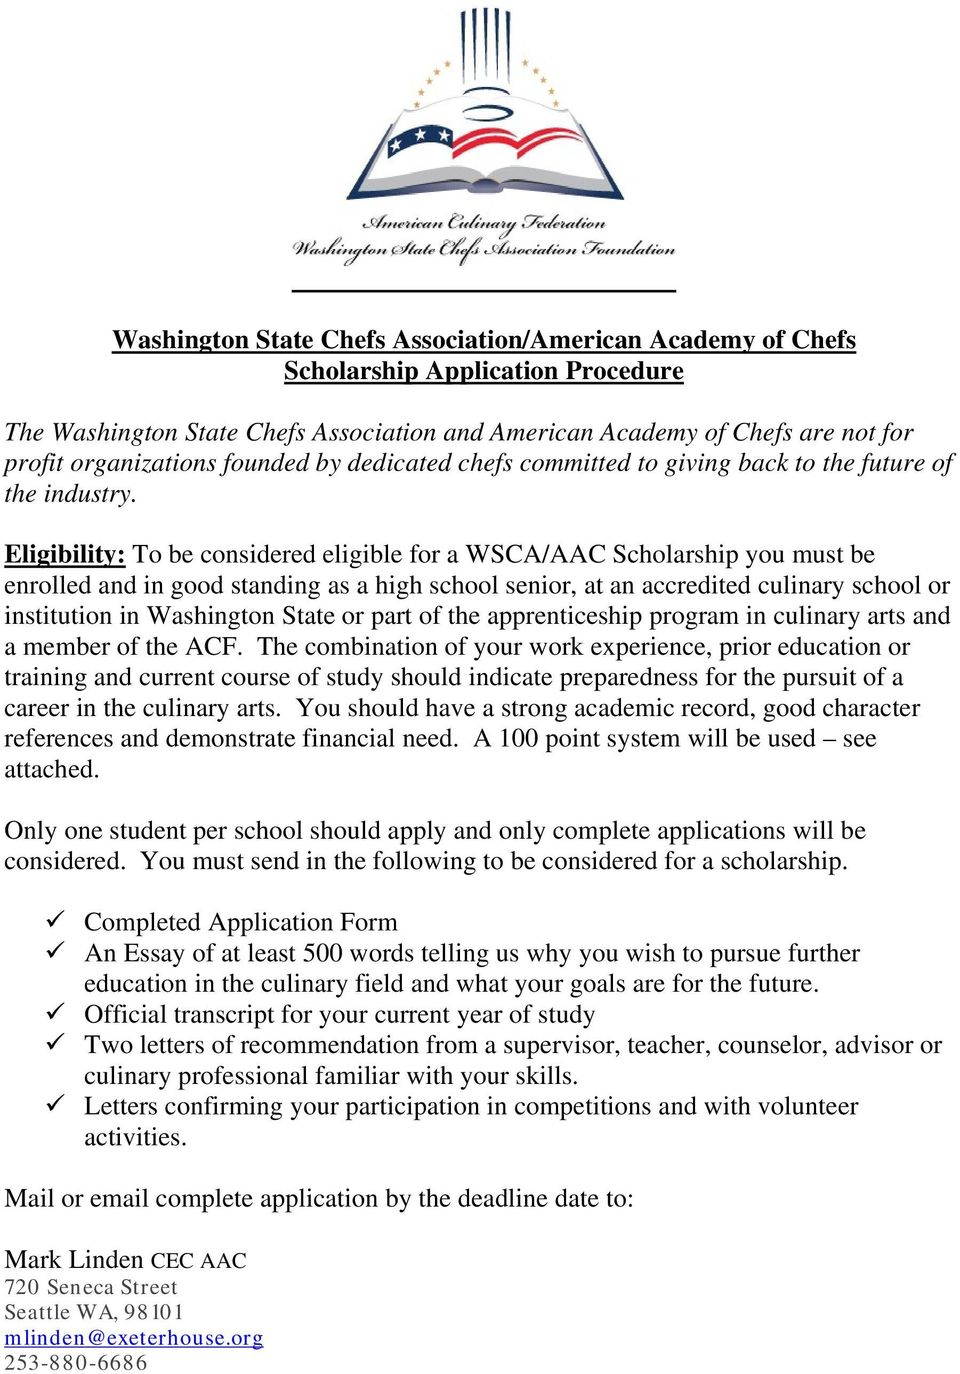 Eligibility: To be considered eligible for a WSCA/AAC Scholarship you must be enrolled and in good standing as a high school senior, at an accredited culinary school or institution in Washington